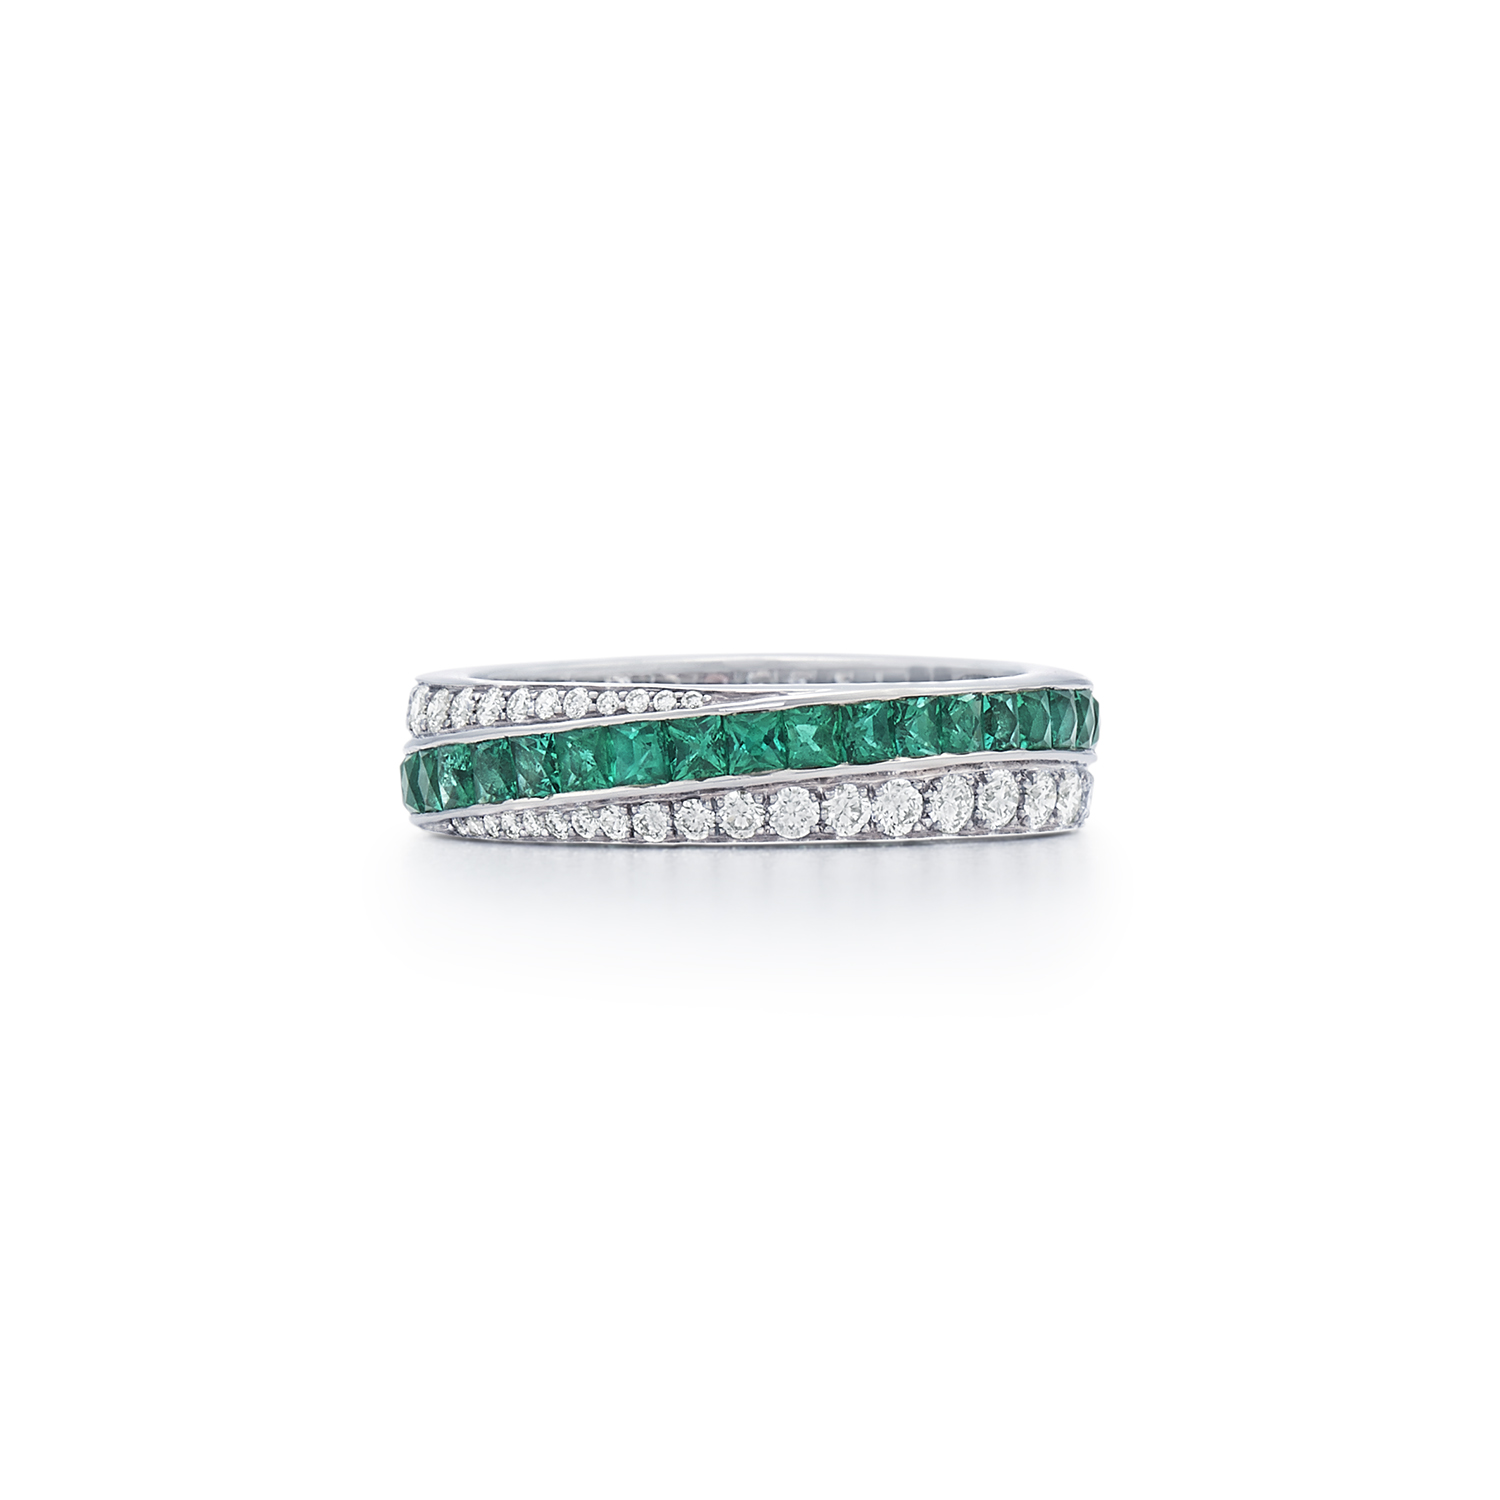 Signed Fred Leighton Diamond and Emerald Stripe Eternity Band Ring R1005-DIAEMER